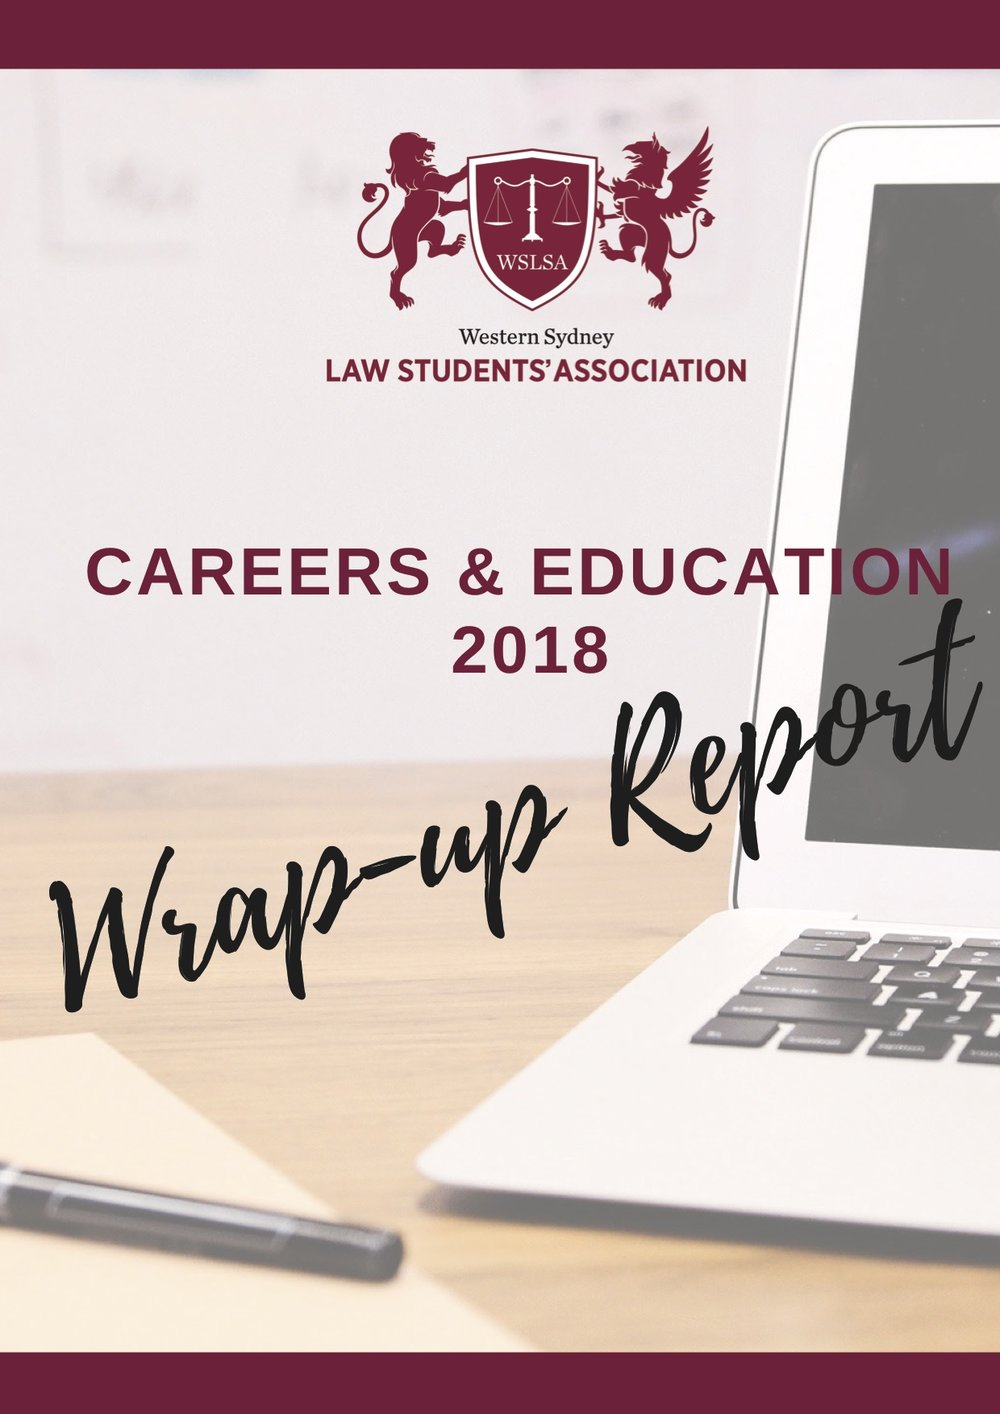 Careers & Education 2018 Wrap-up Report - final version.jpg